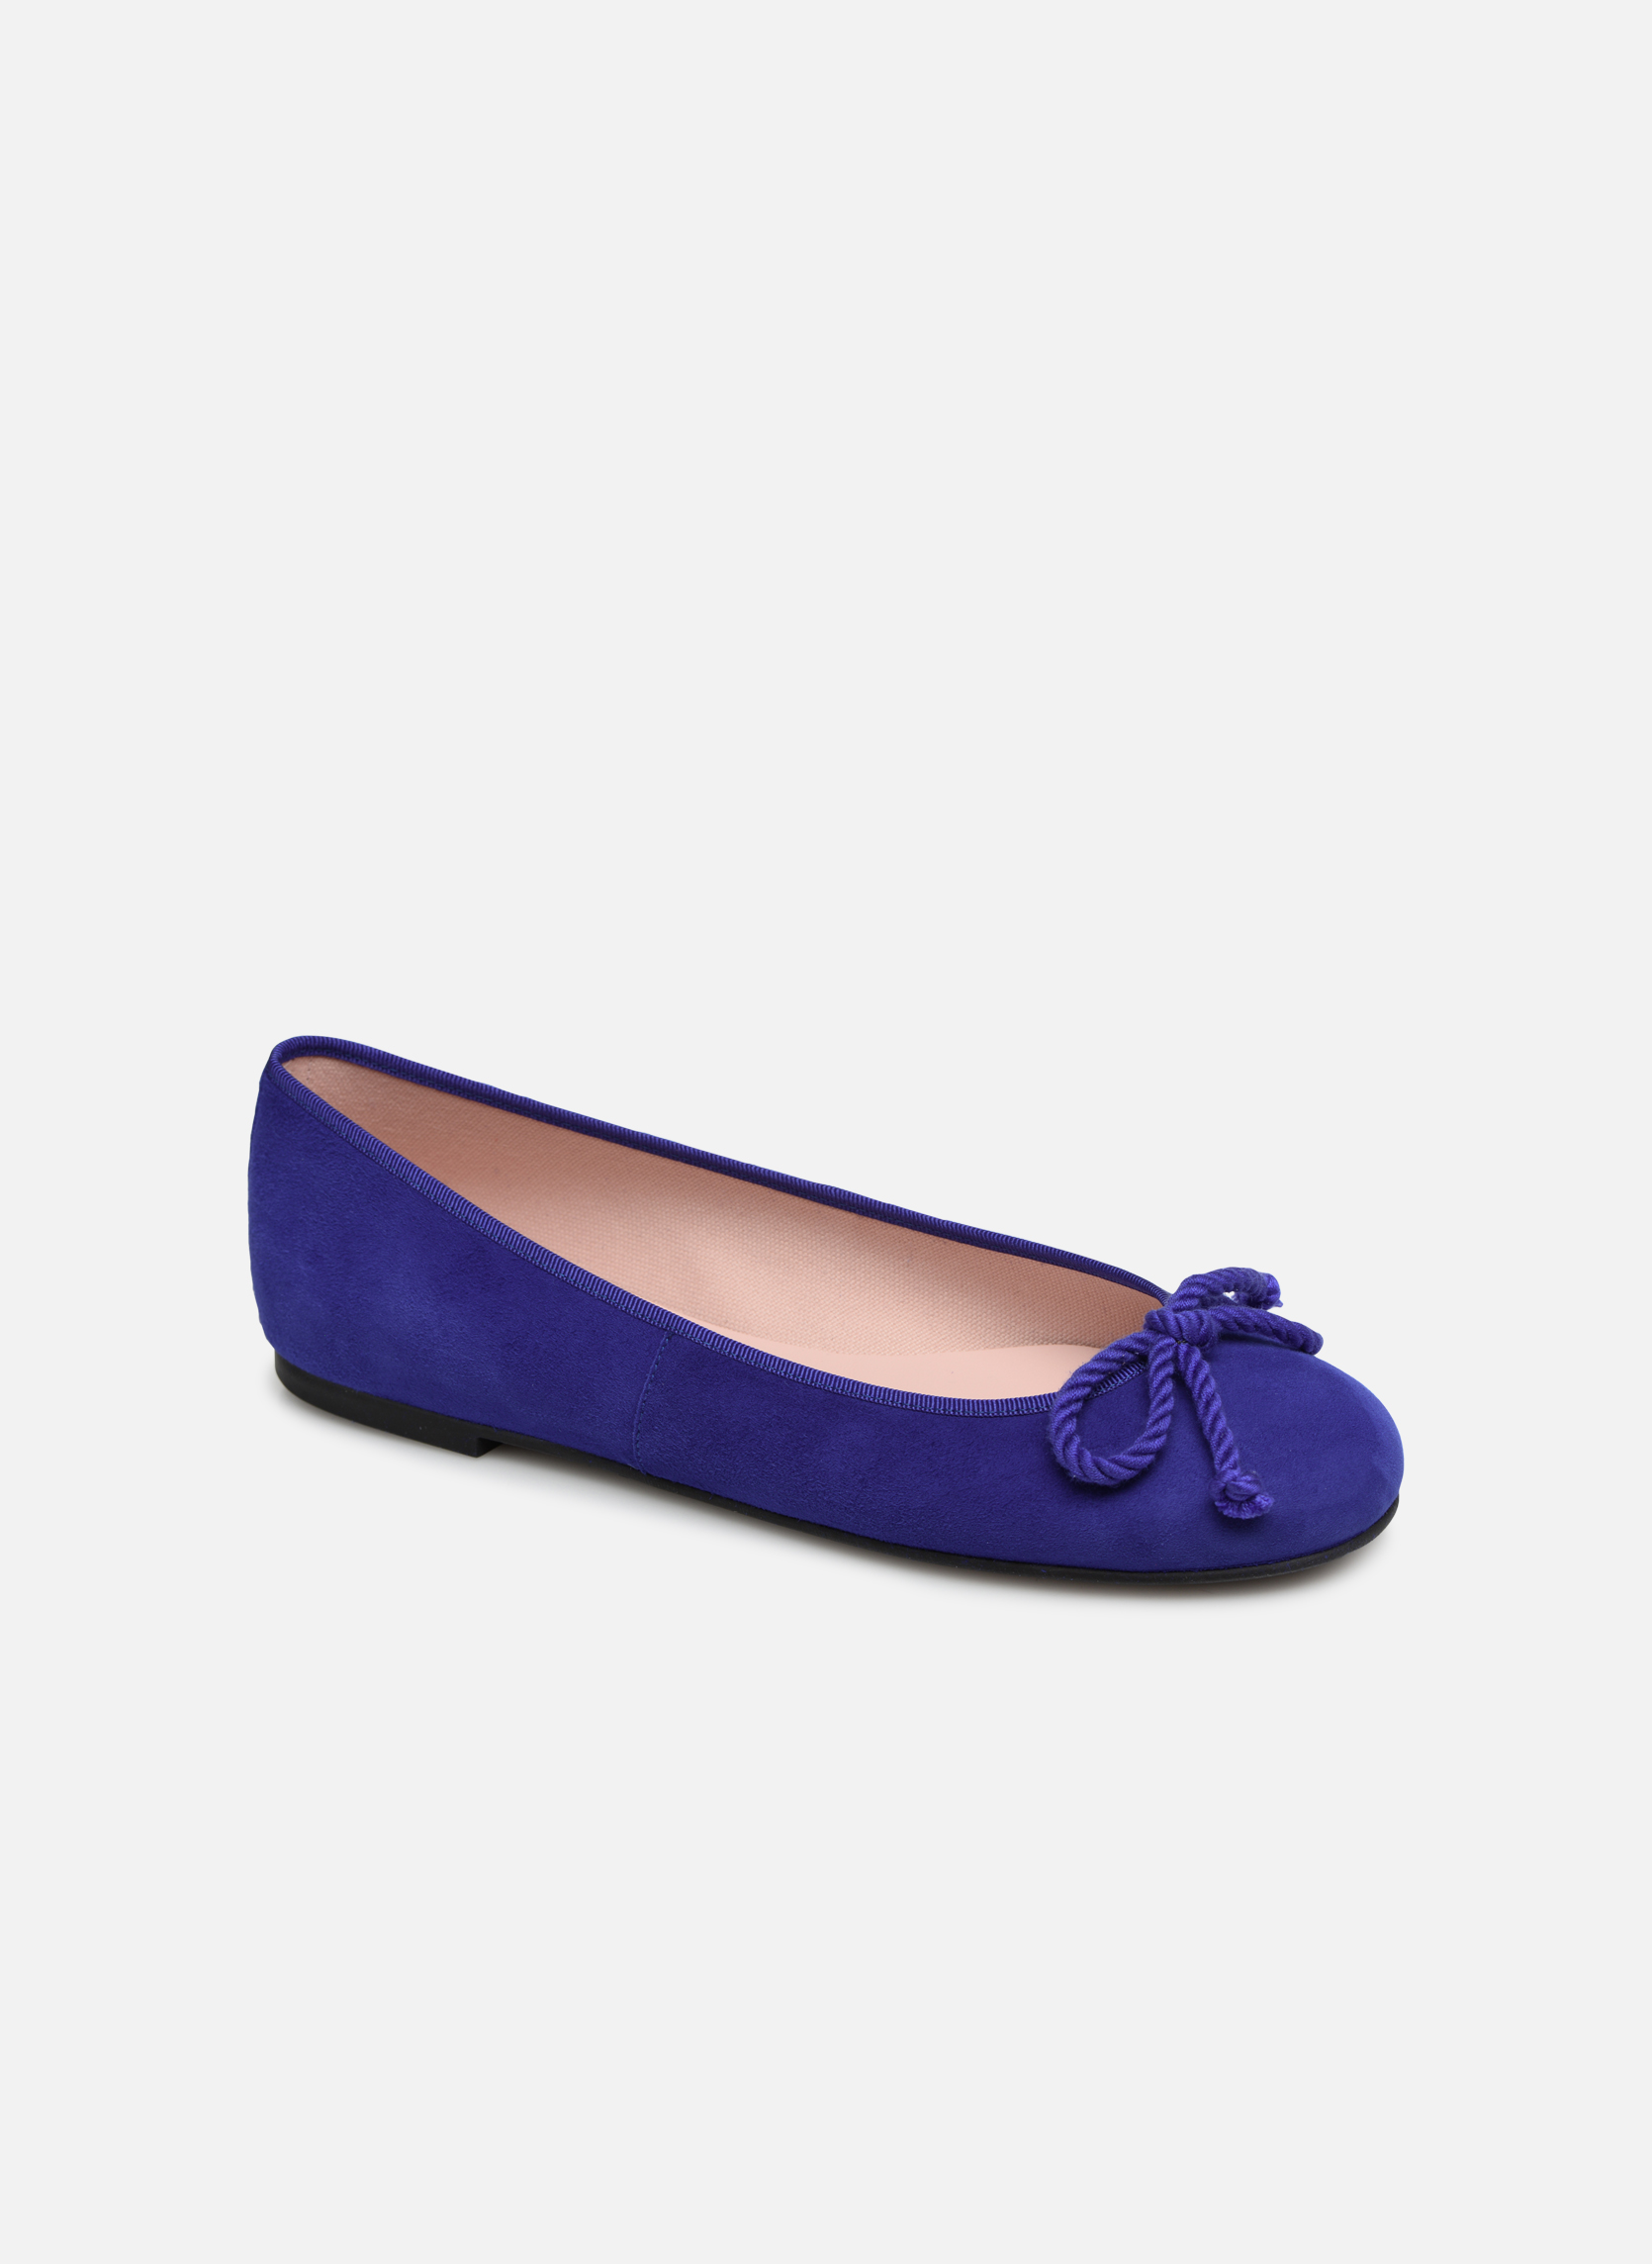 Ballet pumps Women Rosario